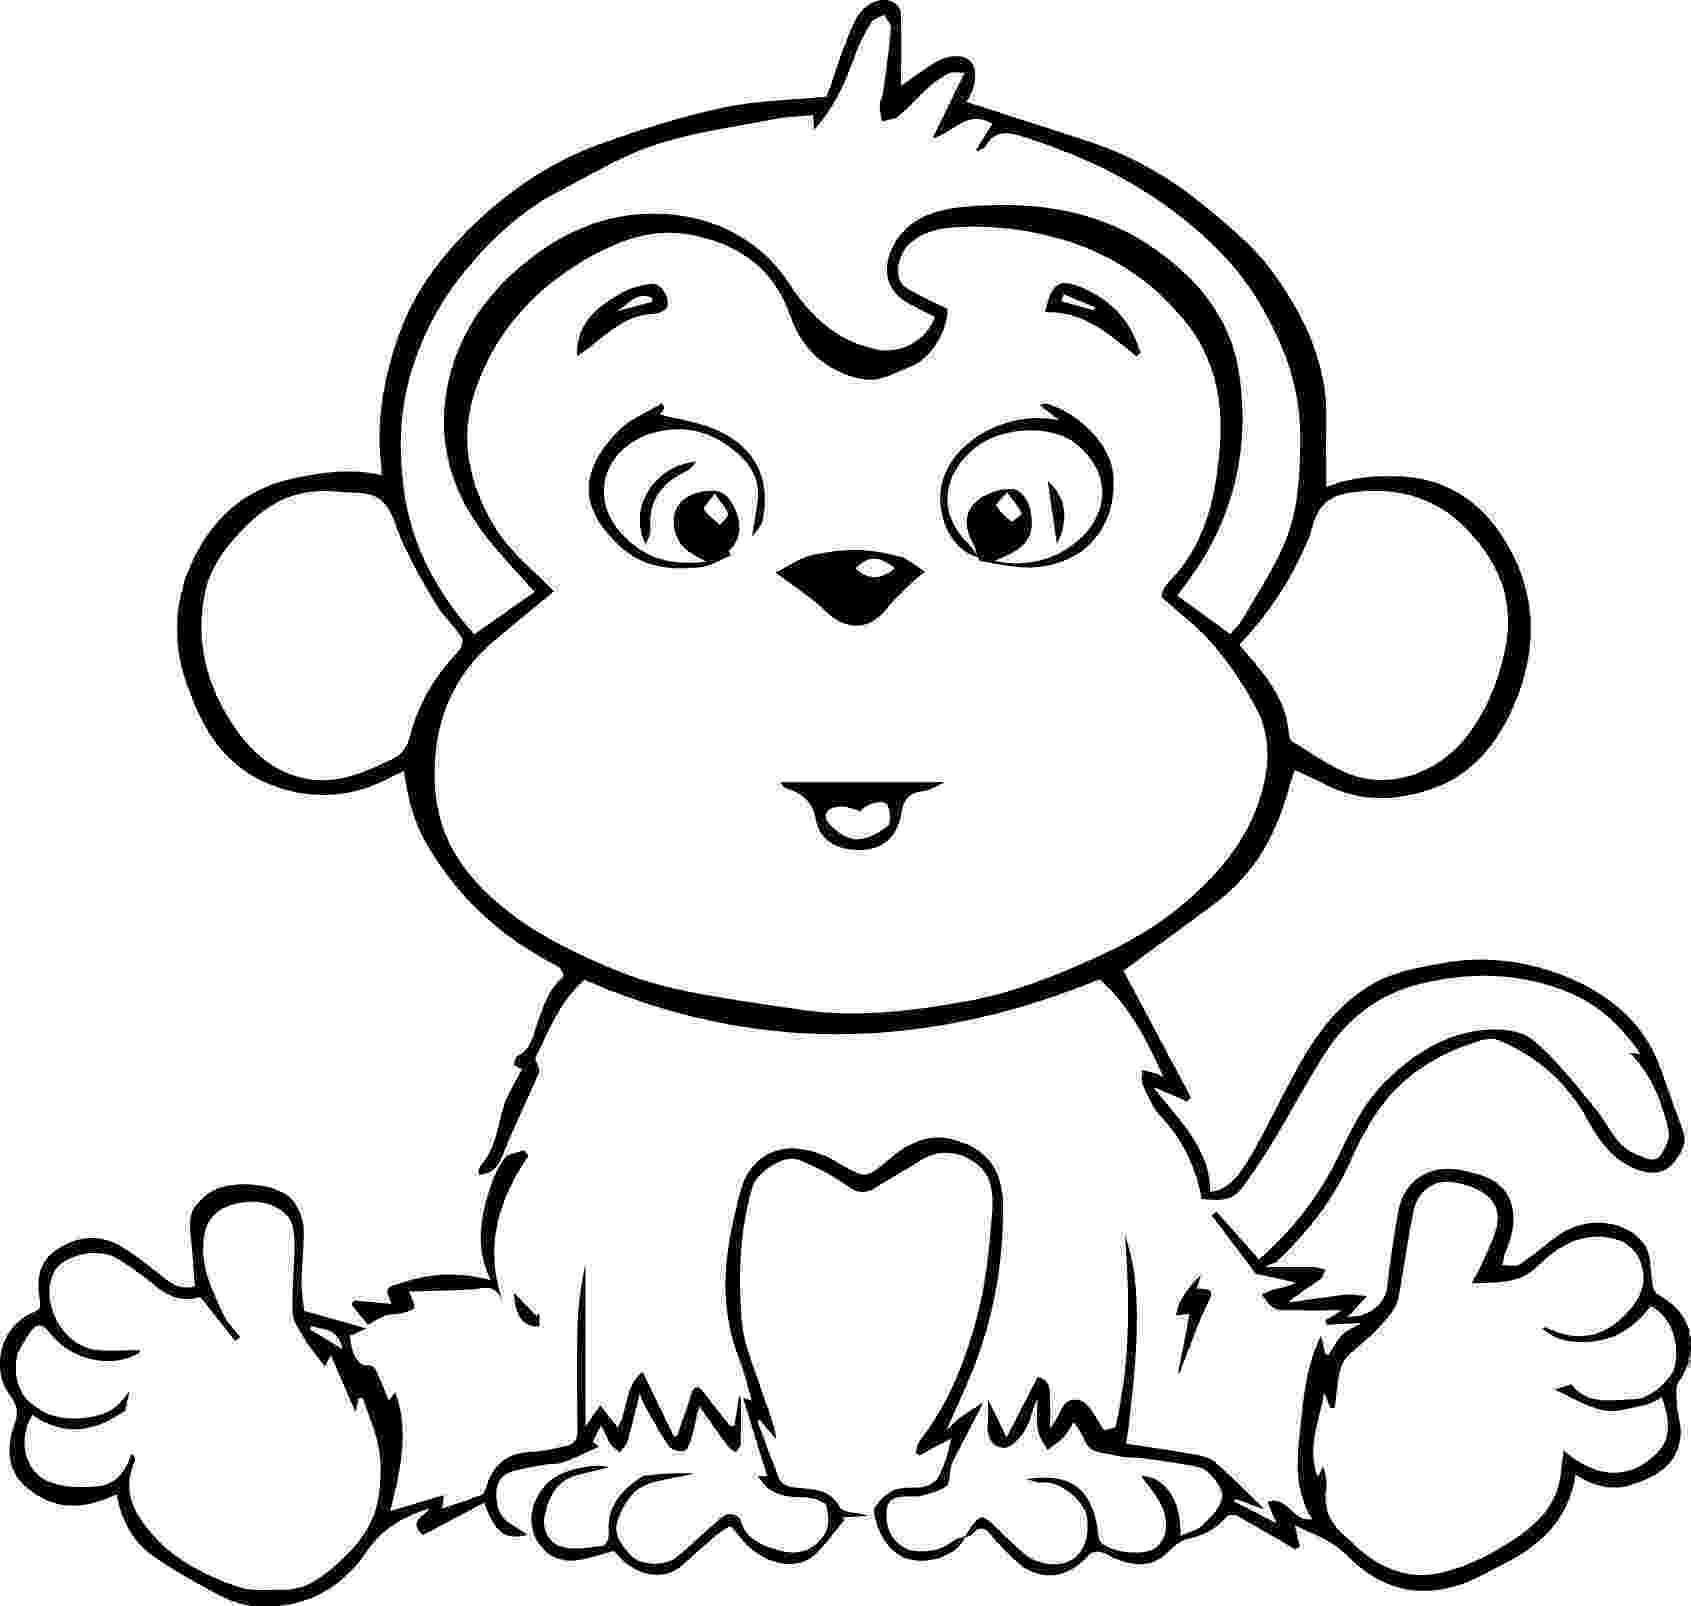 monkey cartoon coloring best monkey outline 16597 clipartioncom monkey coloring cartoon